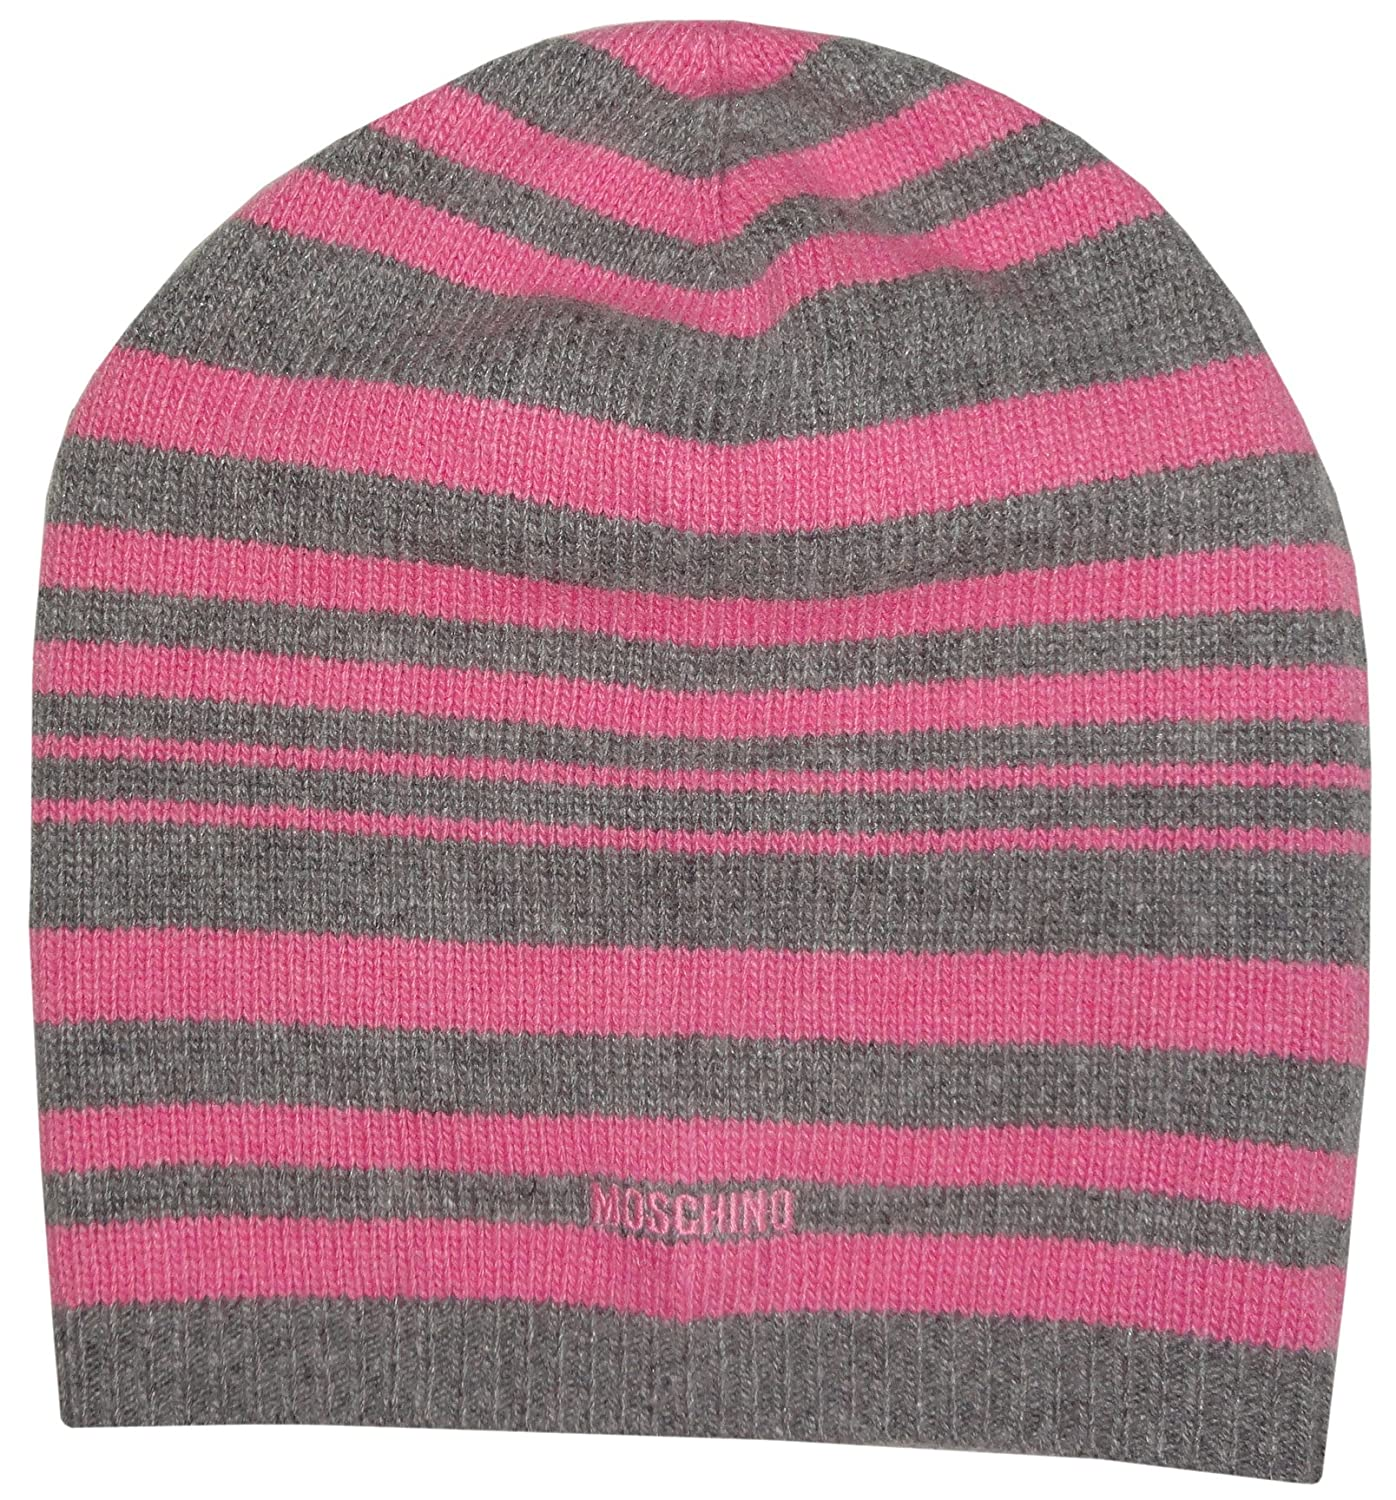 32220d20a46 Moschino Womens Wool and Cashmere Blend Knit Hat Pink and Grey Striped at  Amazon Women s Clothing store